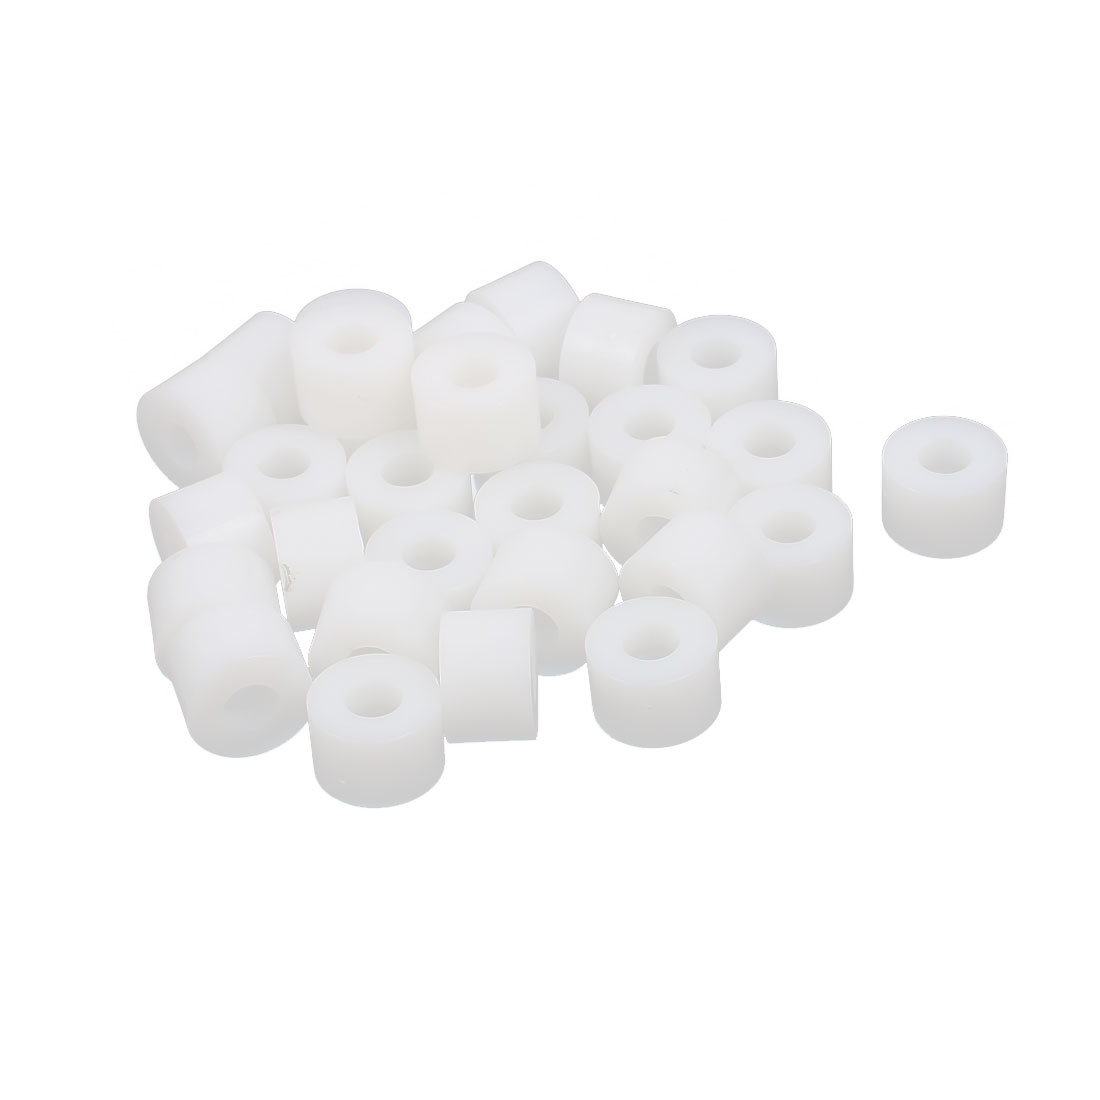 Round Plastic Insulation Column Standoff Support Spacer Tube White 12x8mm 30pcs